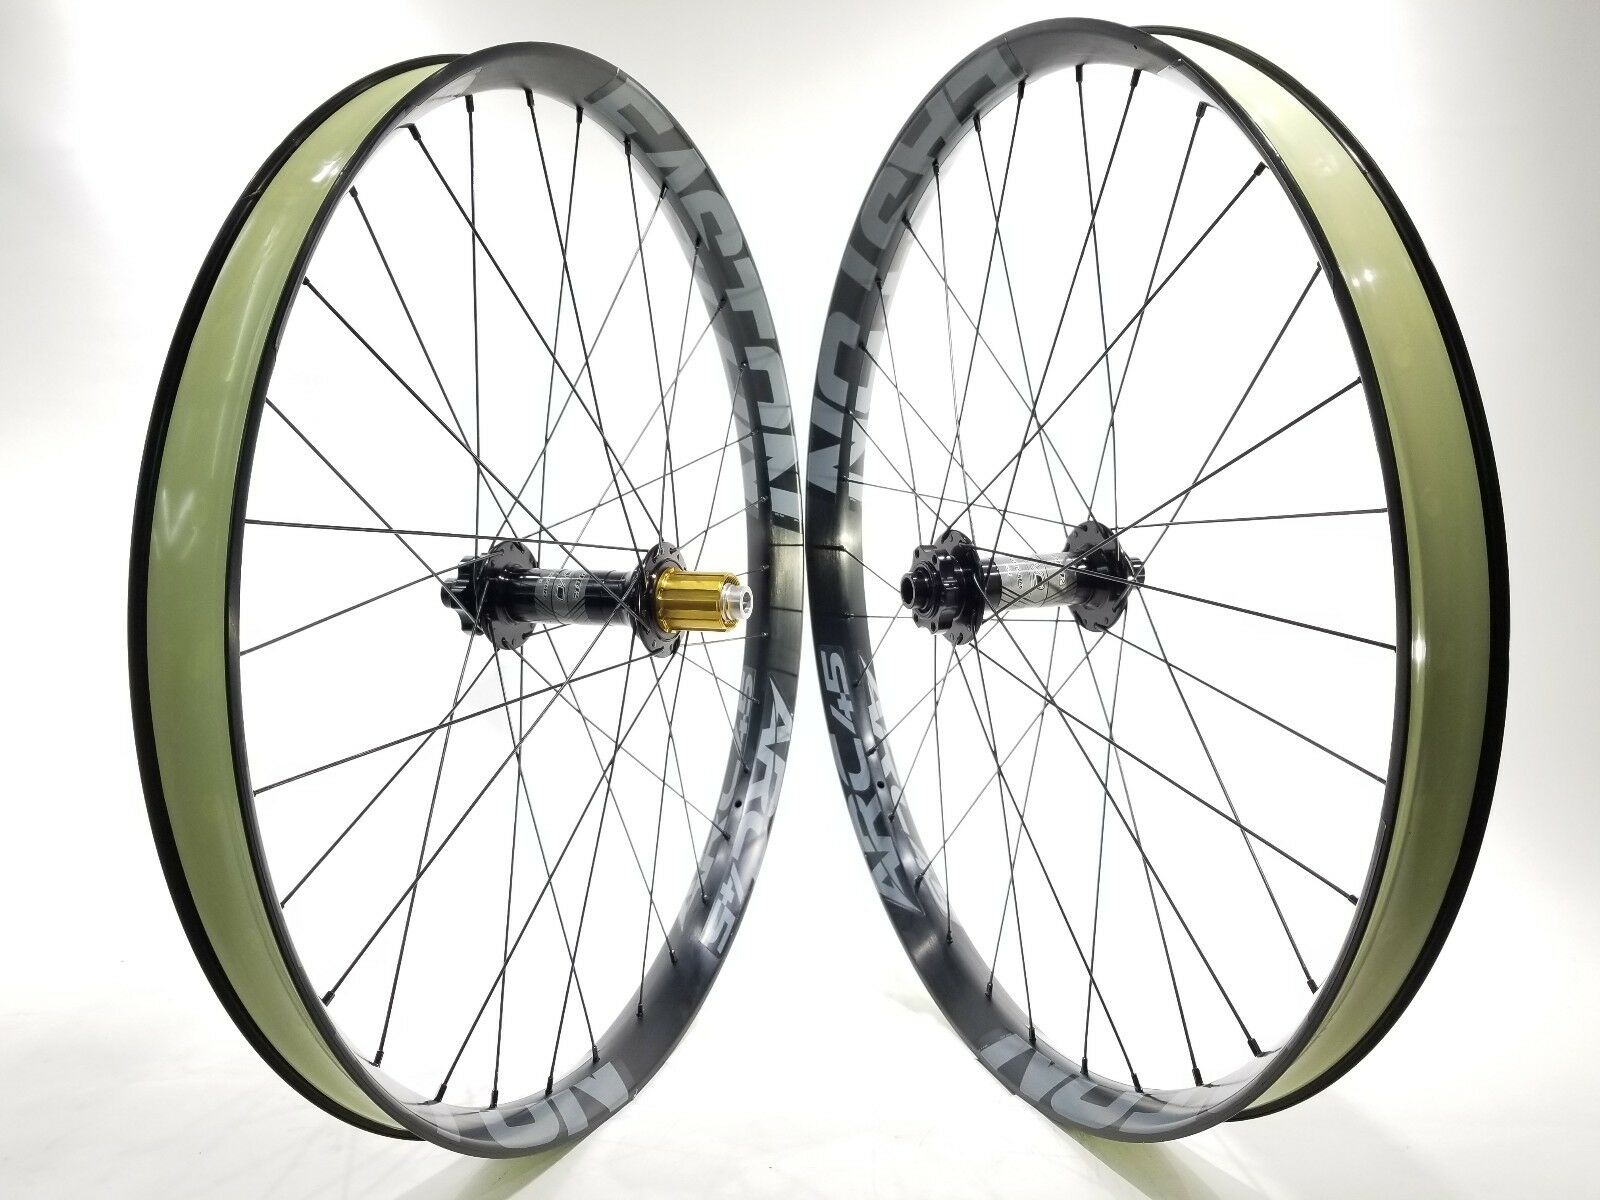 Easton    Race Face Arc 45 27.5 in. rims Hope Pro 2 Fatsno hubs Bicycle Wheels  order now with big discount & free delivery